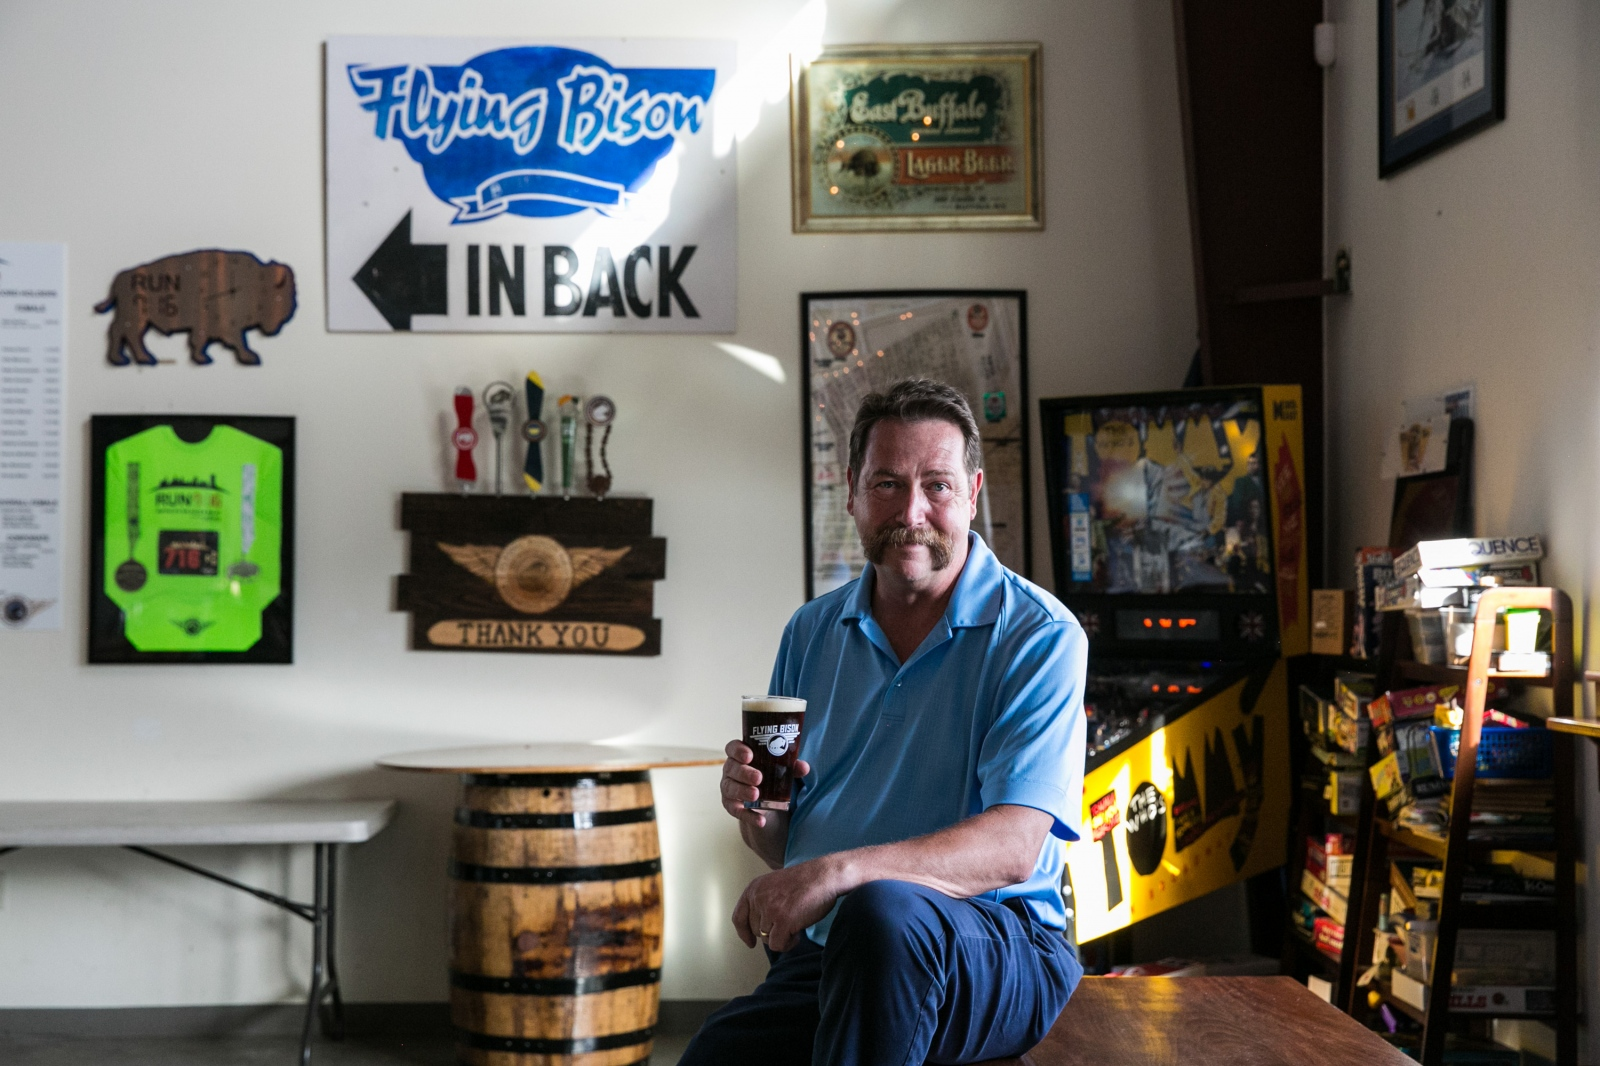 Flying Bison founder Tim Herzog sits in front of the brewery's oldest sign with a glass of Aviator Red in his hand in Buffalo, N.Y.